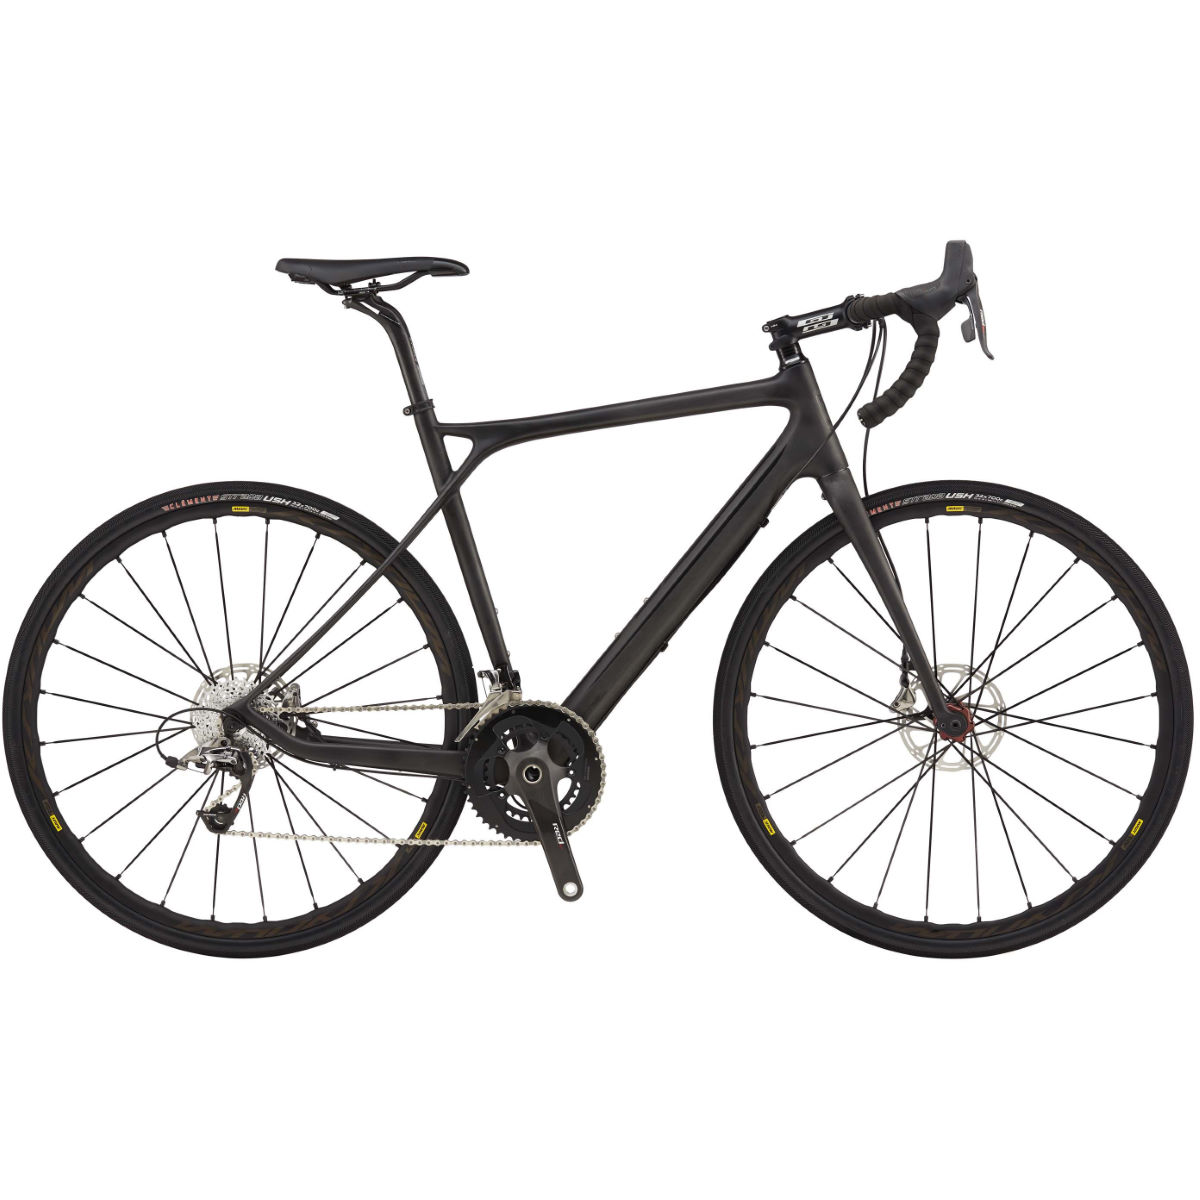 Vélode route GT Grade Carbone (aventure, SRAM Red, 2017) - 55cm